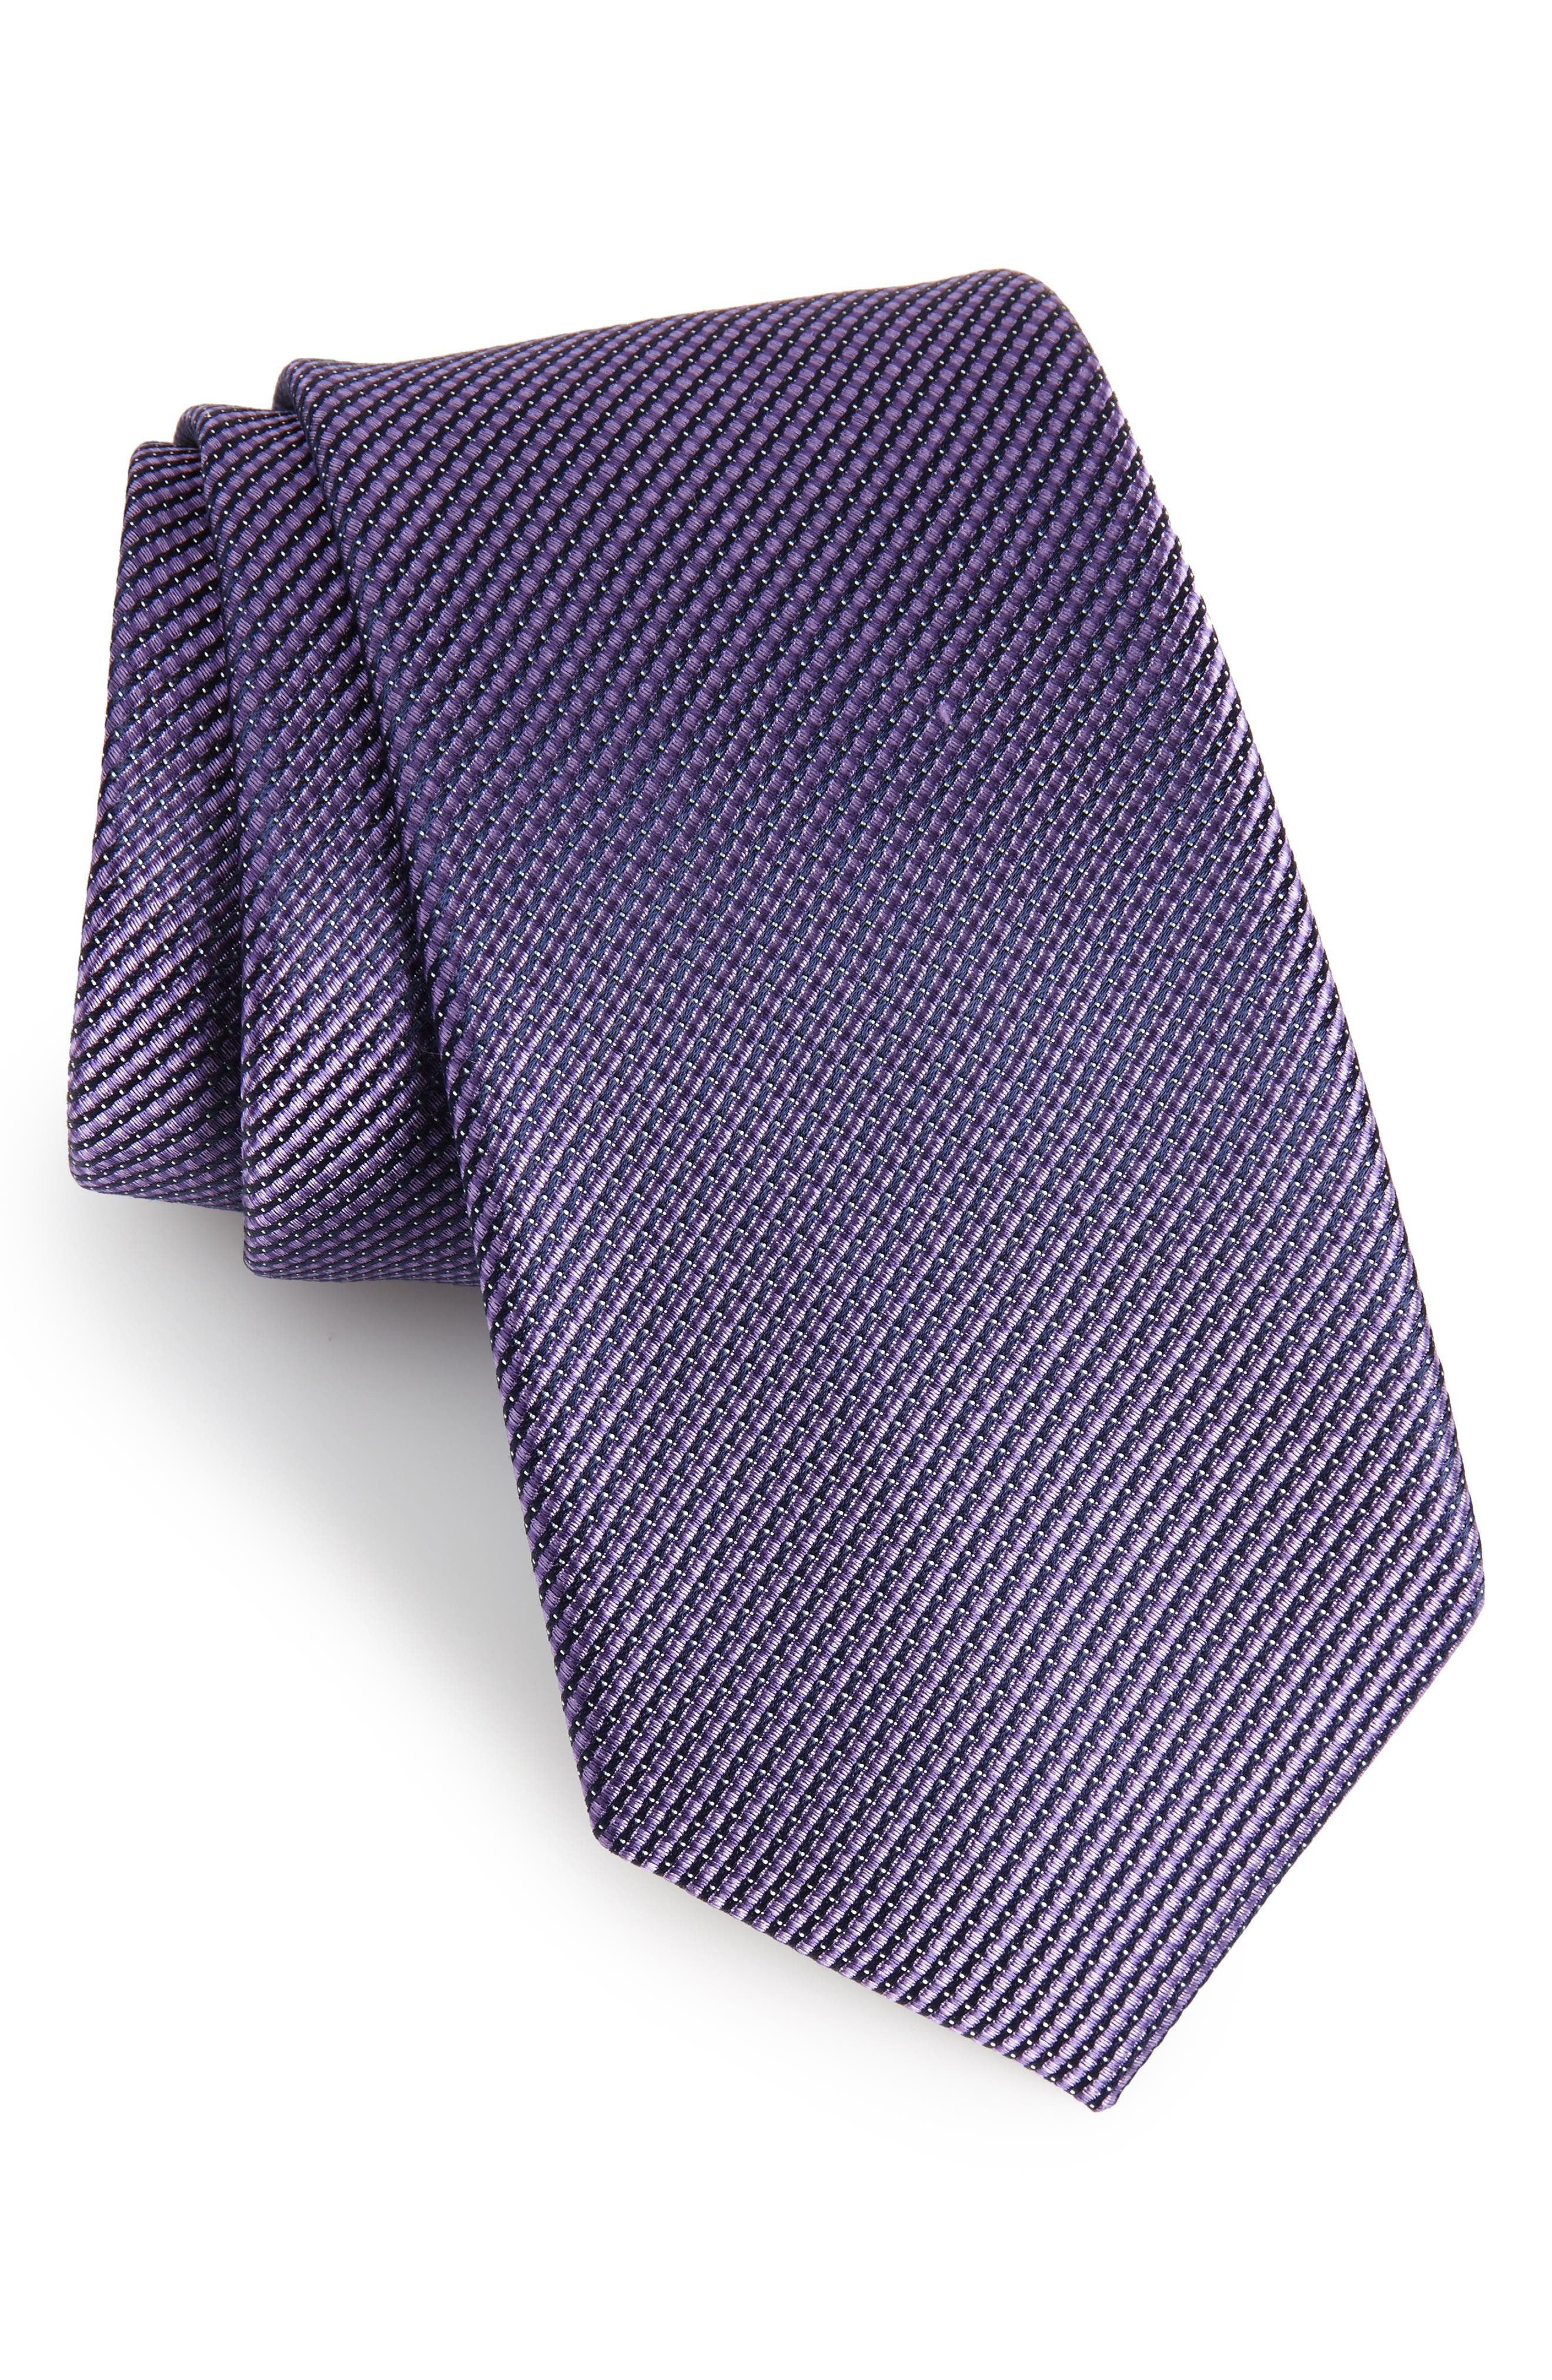 Alternate Image 1 Selected - Calibrate Amsberry Microcheck Silk Tie